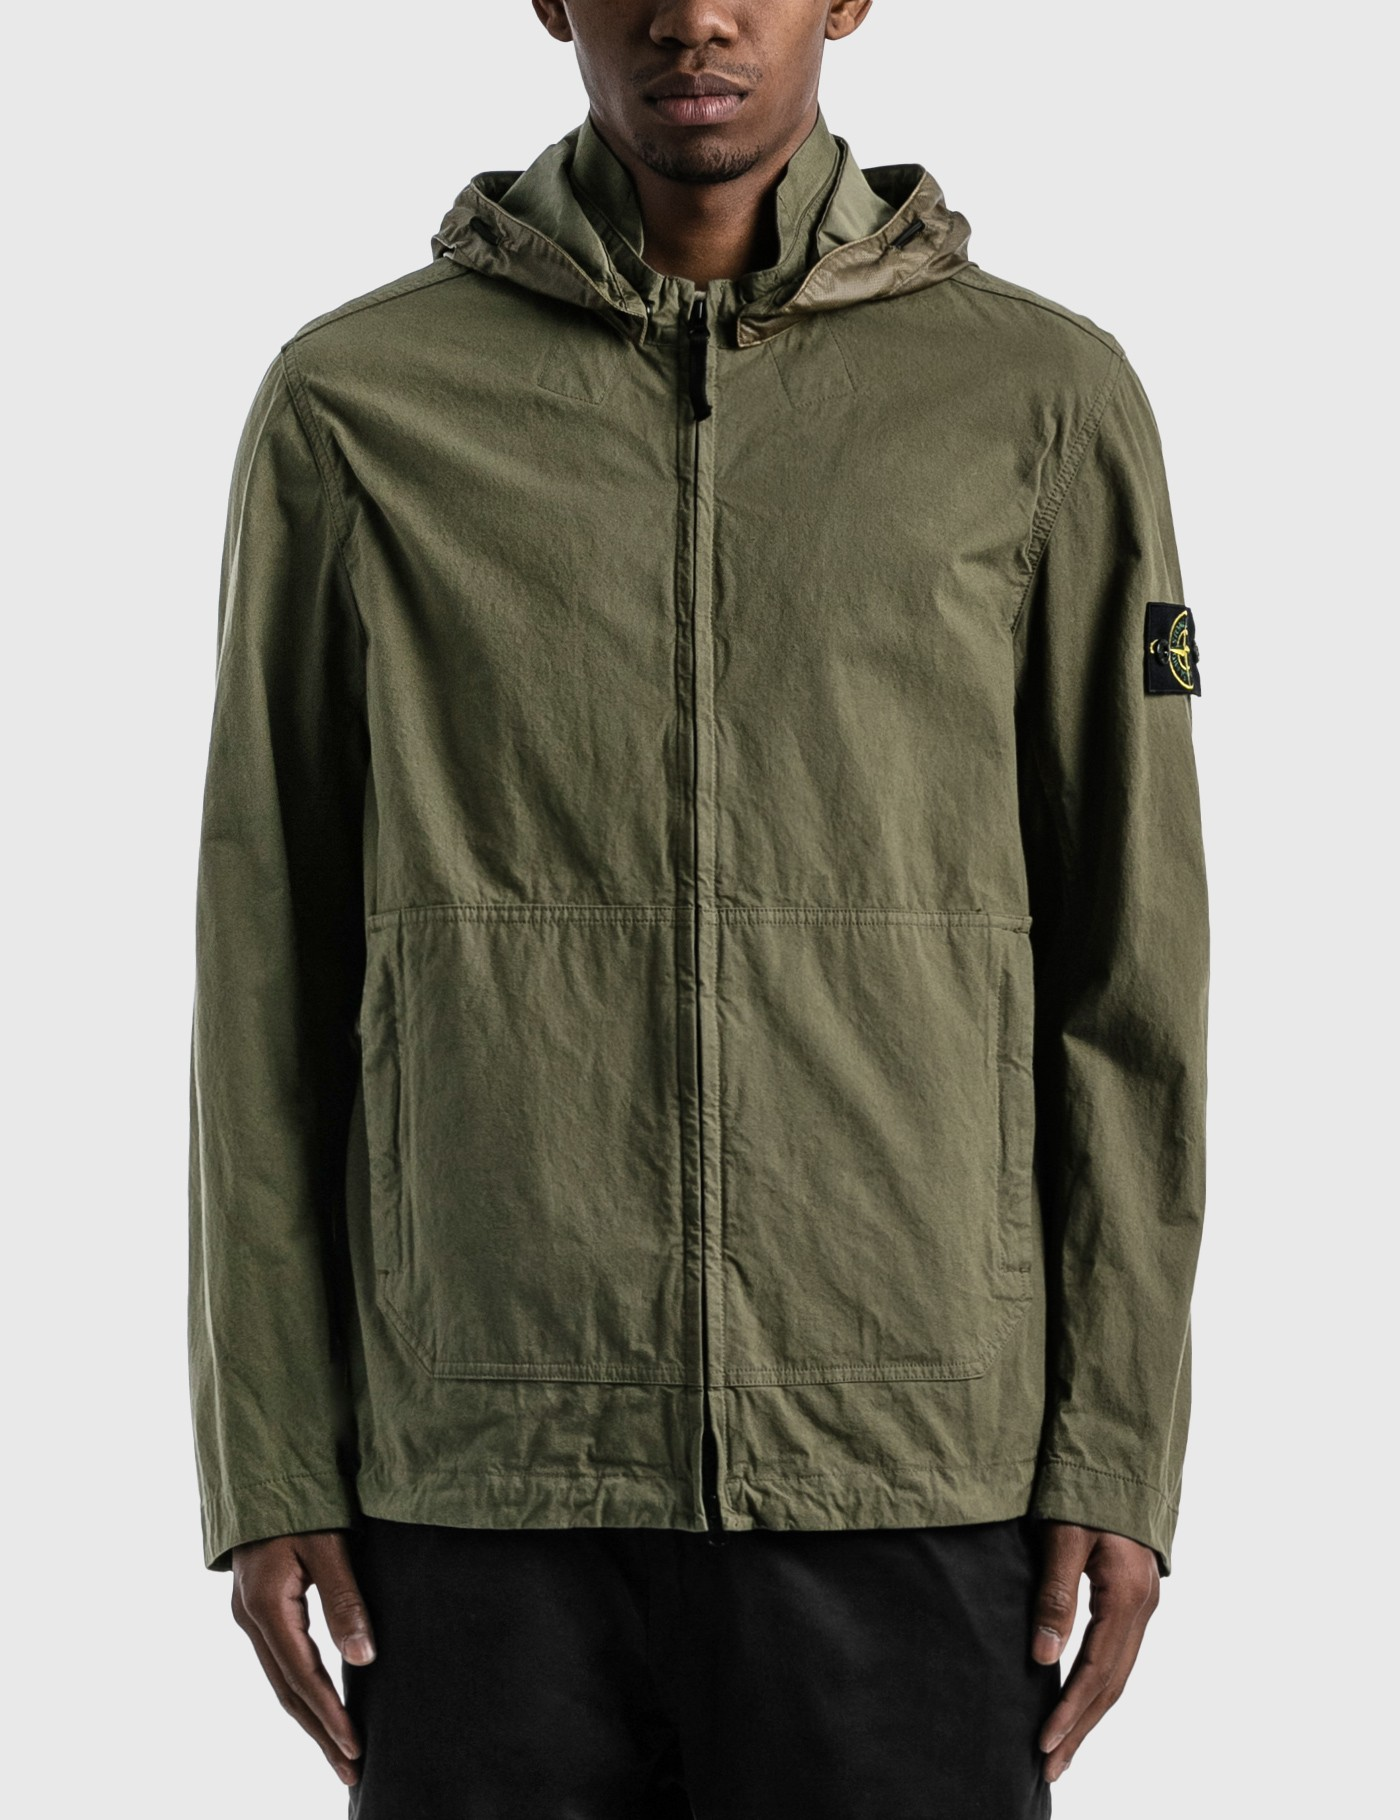 Cotton Blended Jacket With Detachable Hood